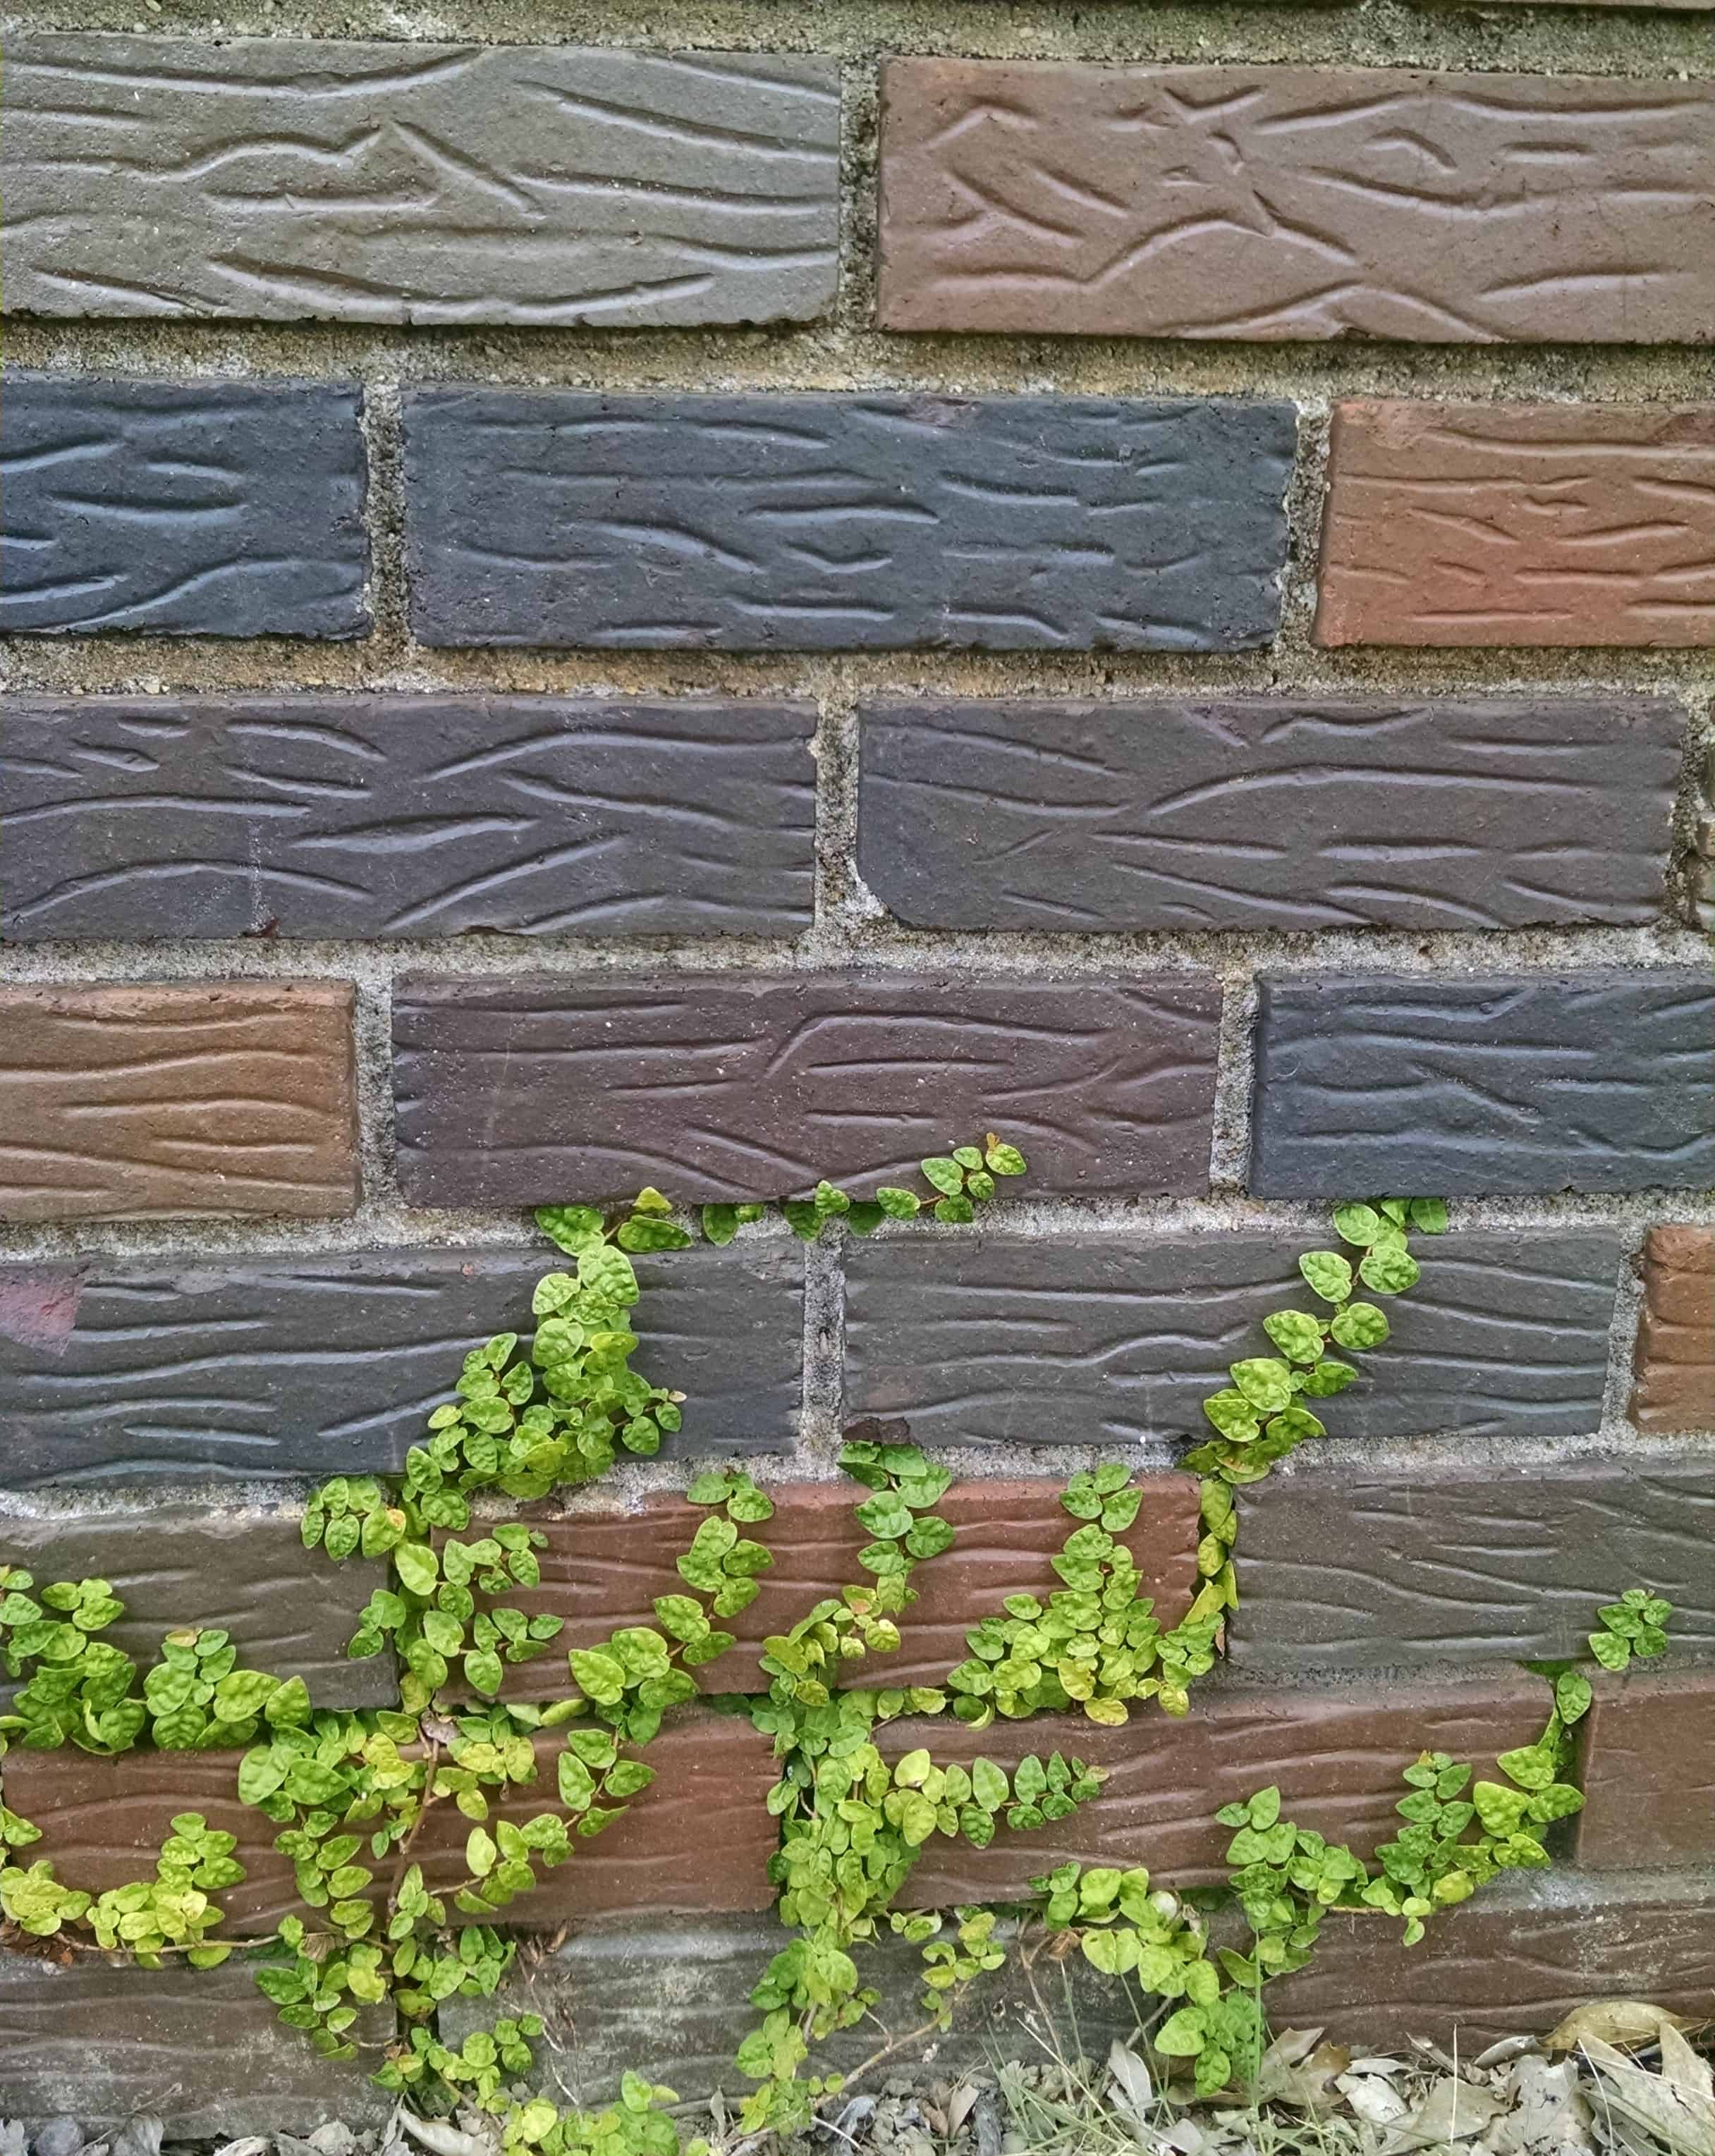 Creeping Fig vine growing on brick wall